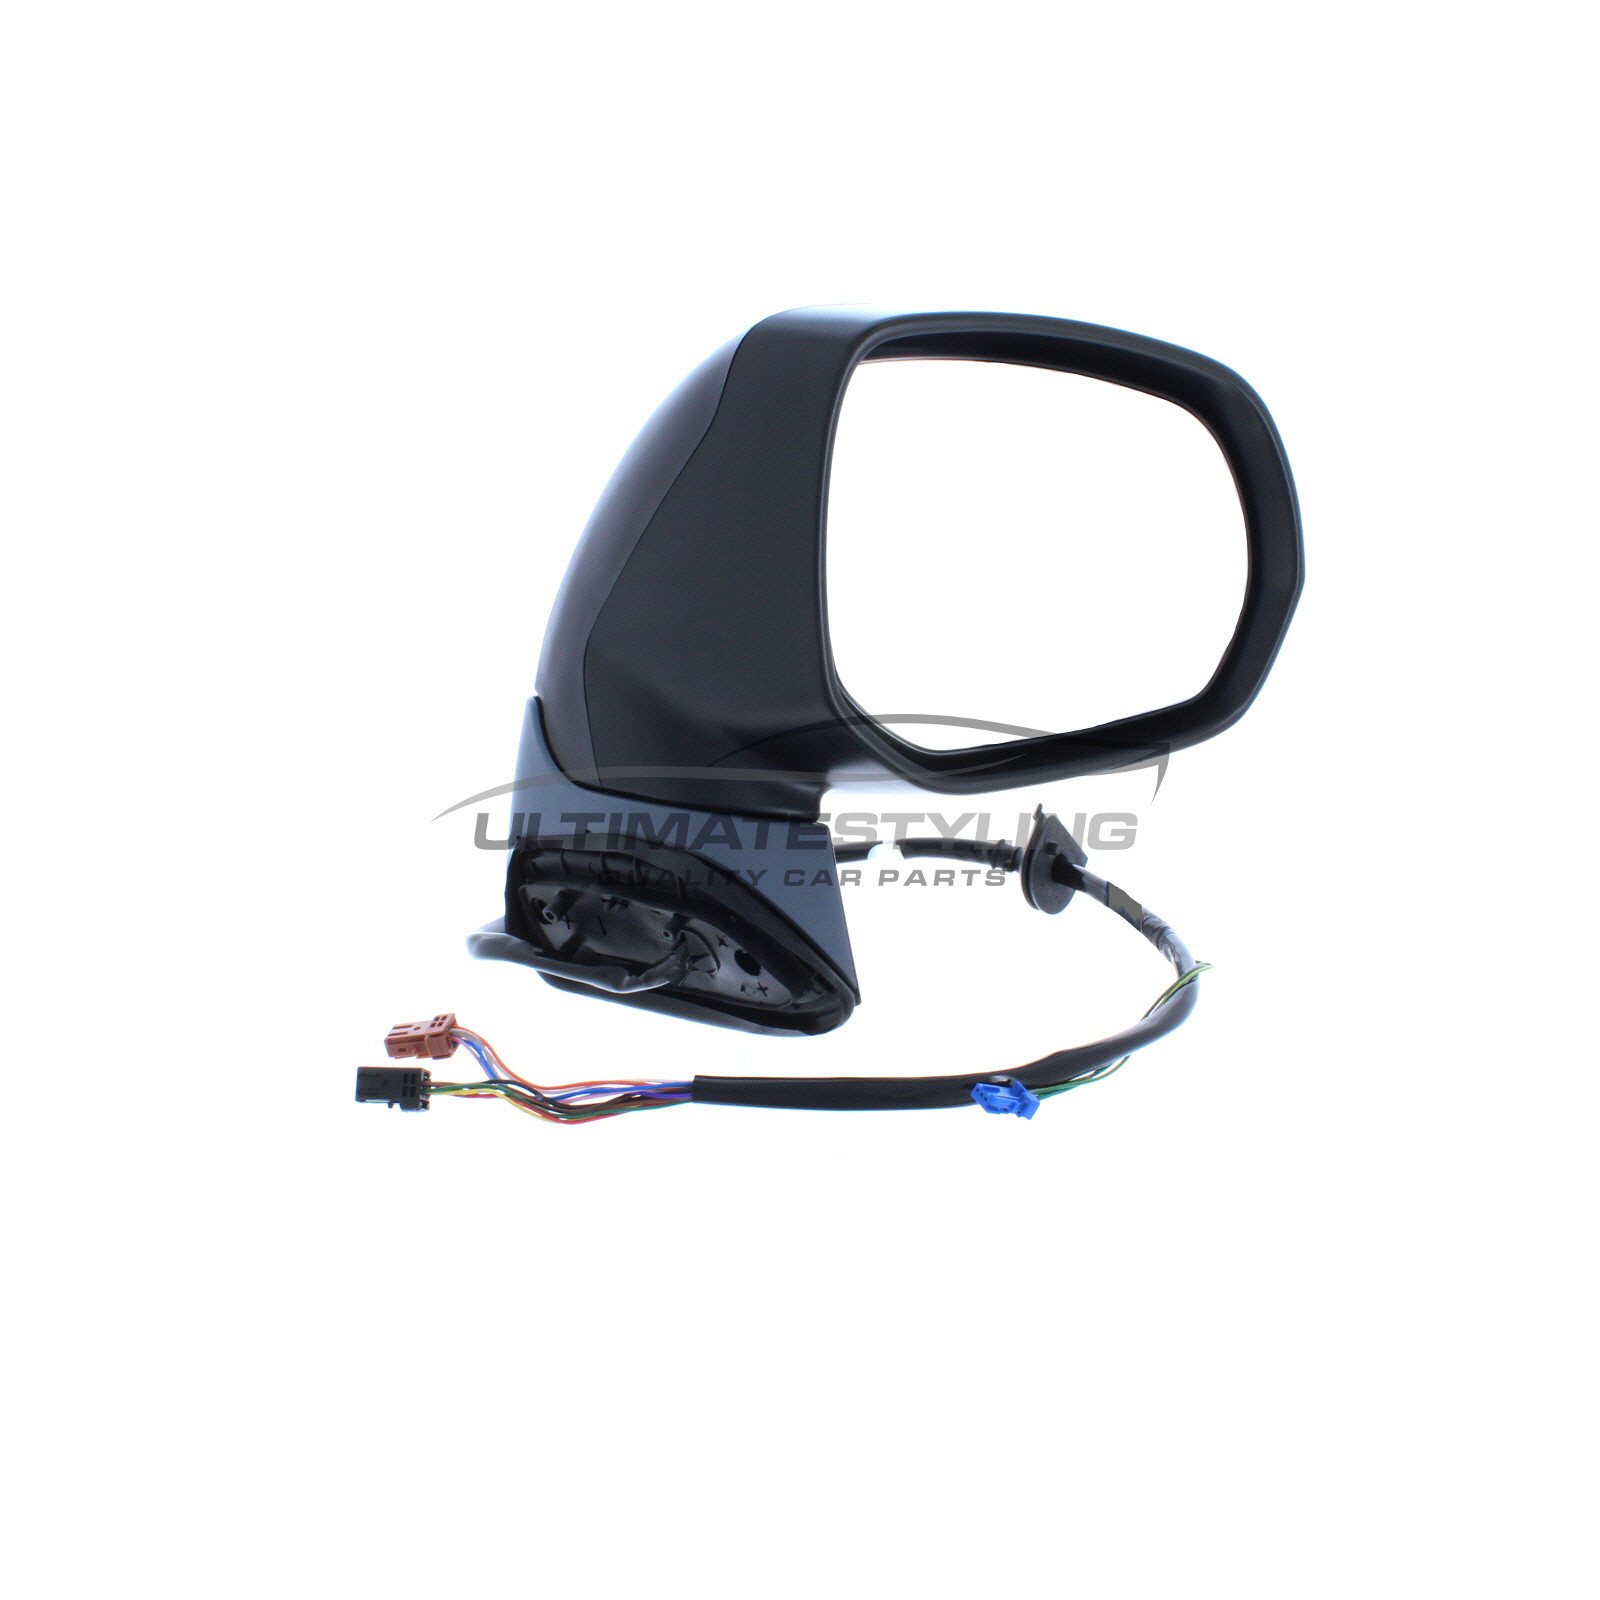 For Citroen C4 Picasso 07-13 Electric Wing Mirror Paintable Cover Drivers Side